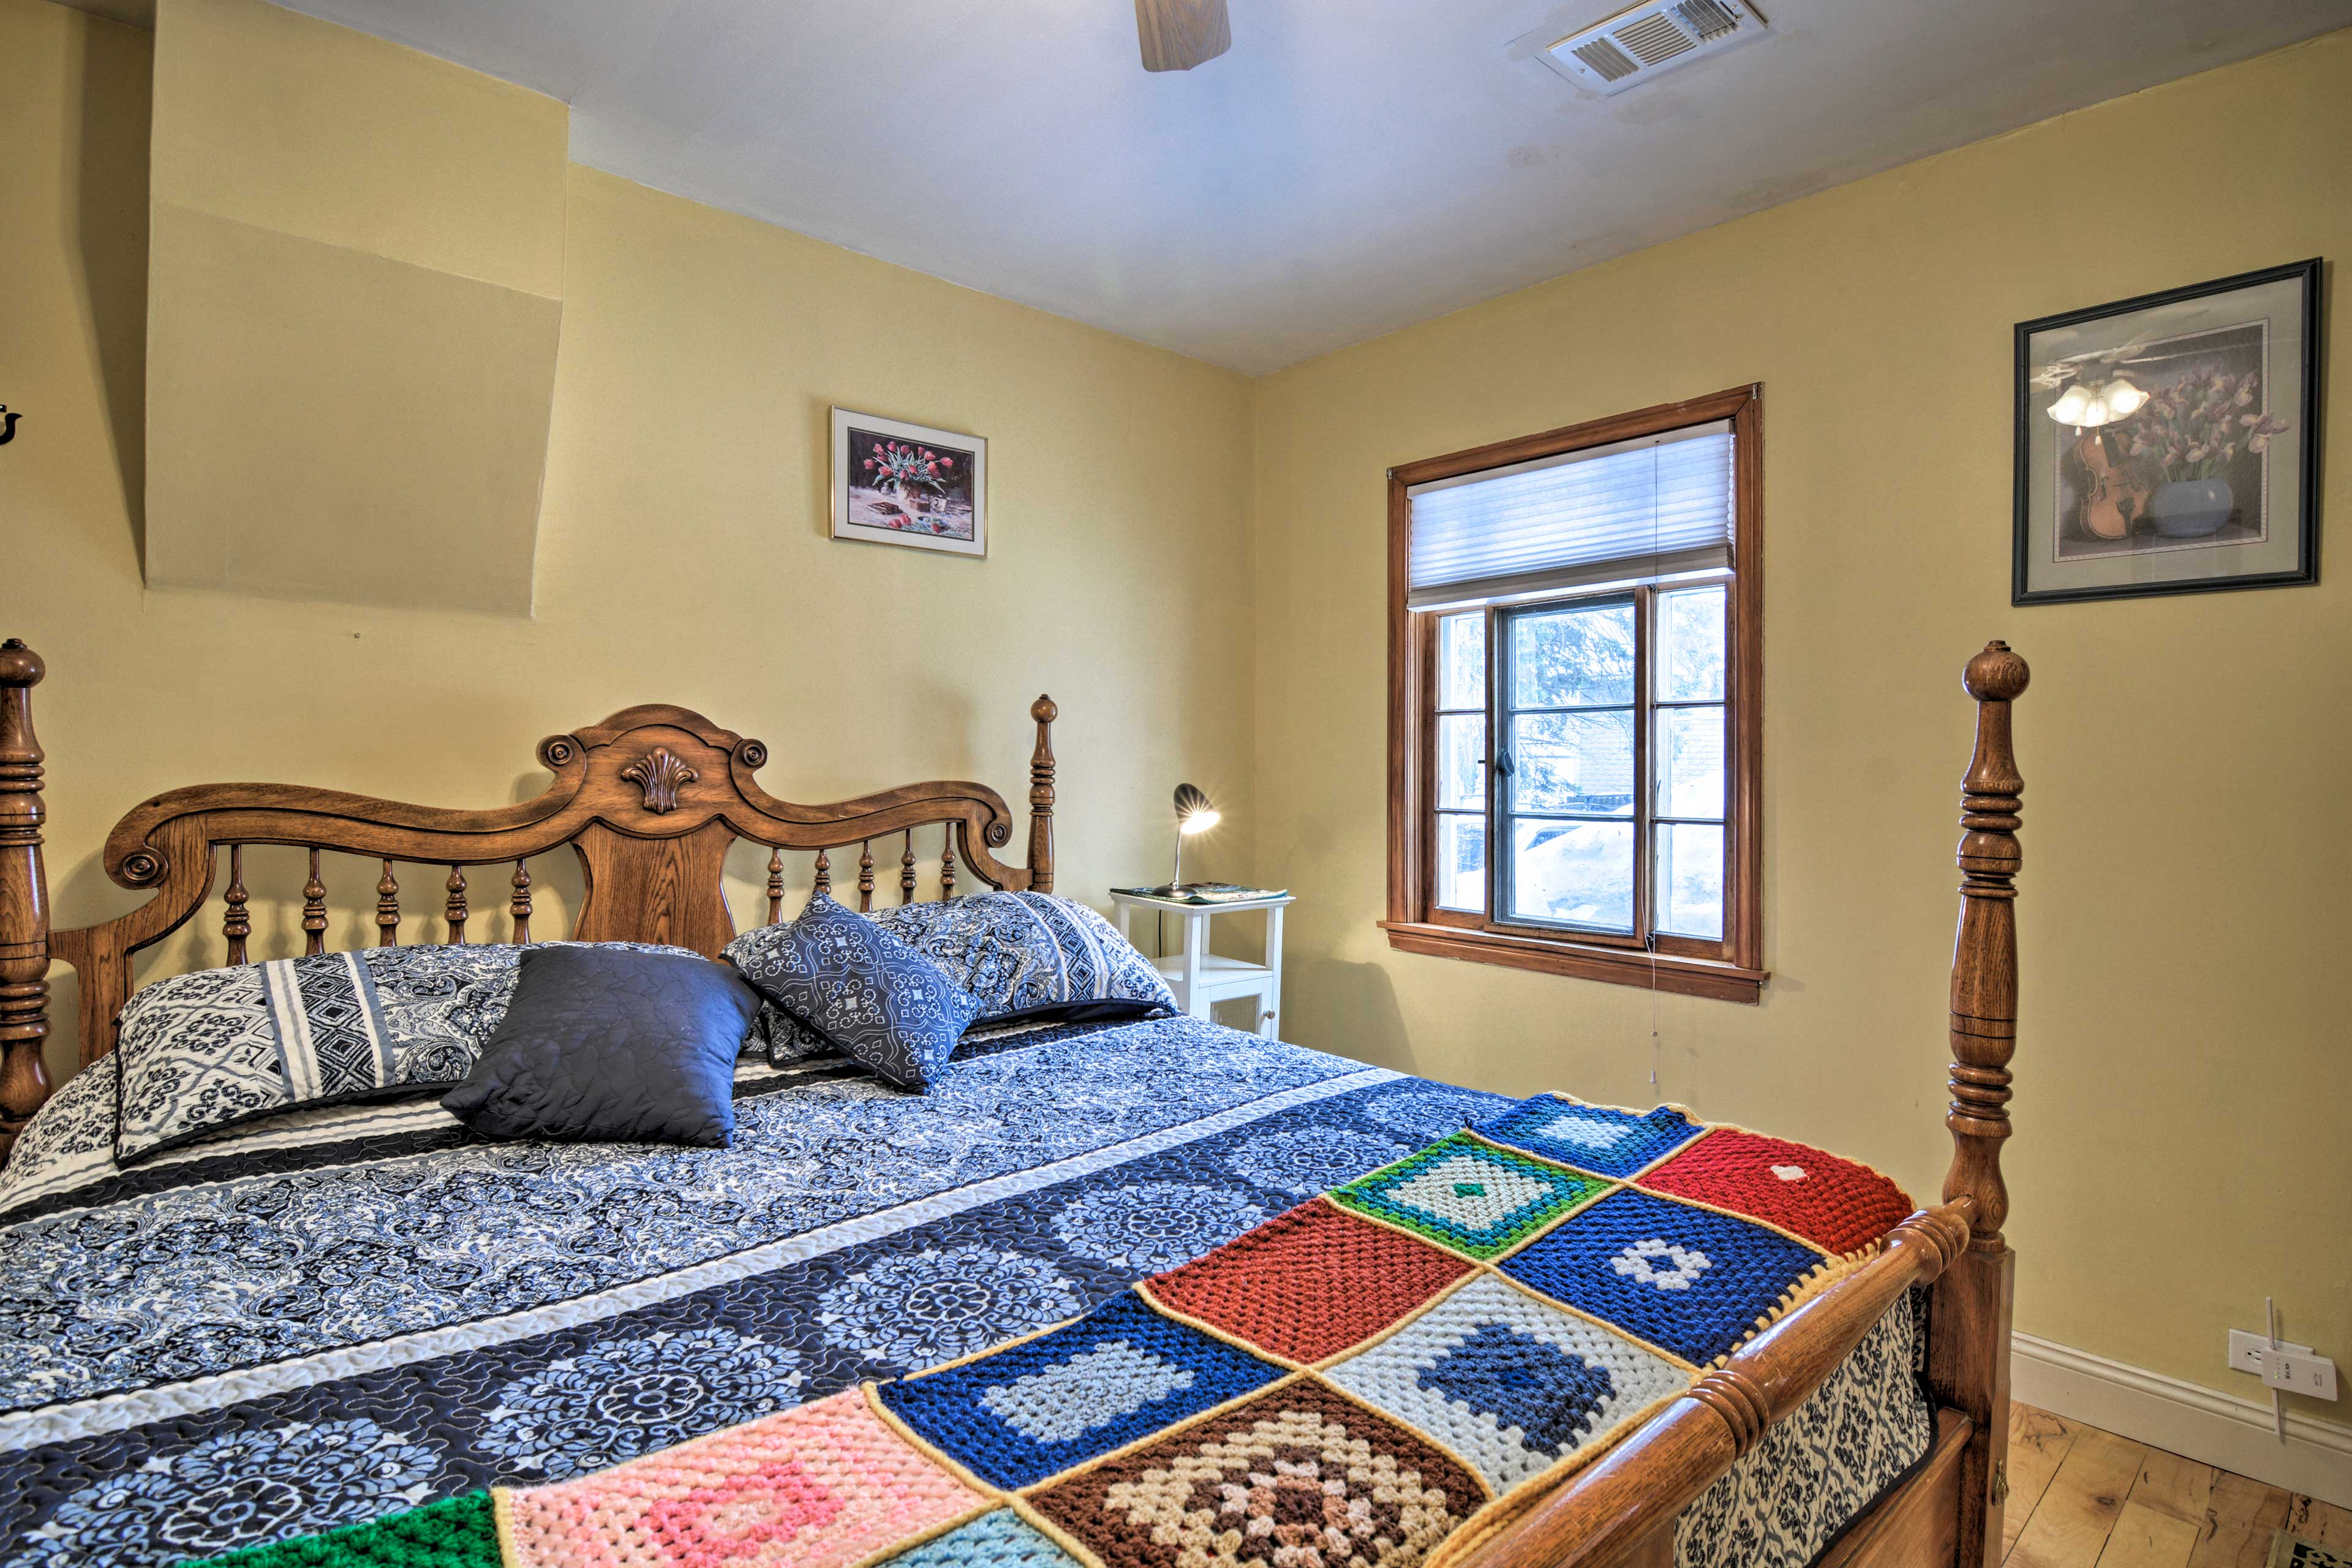 The second master bedroom features a queen-sized bed.